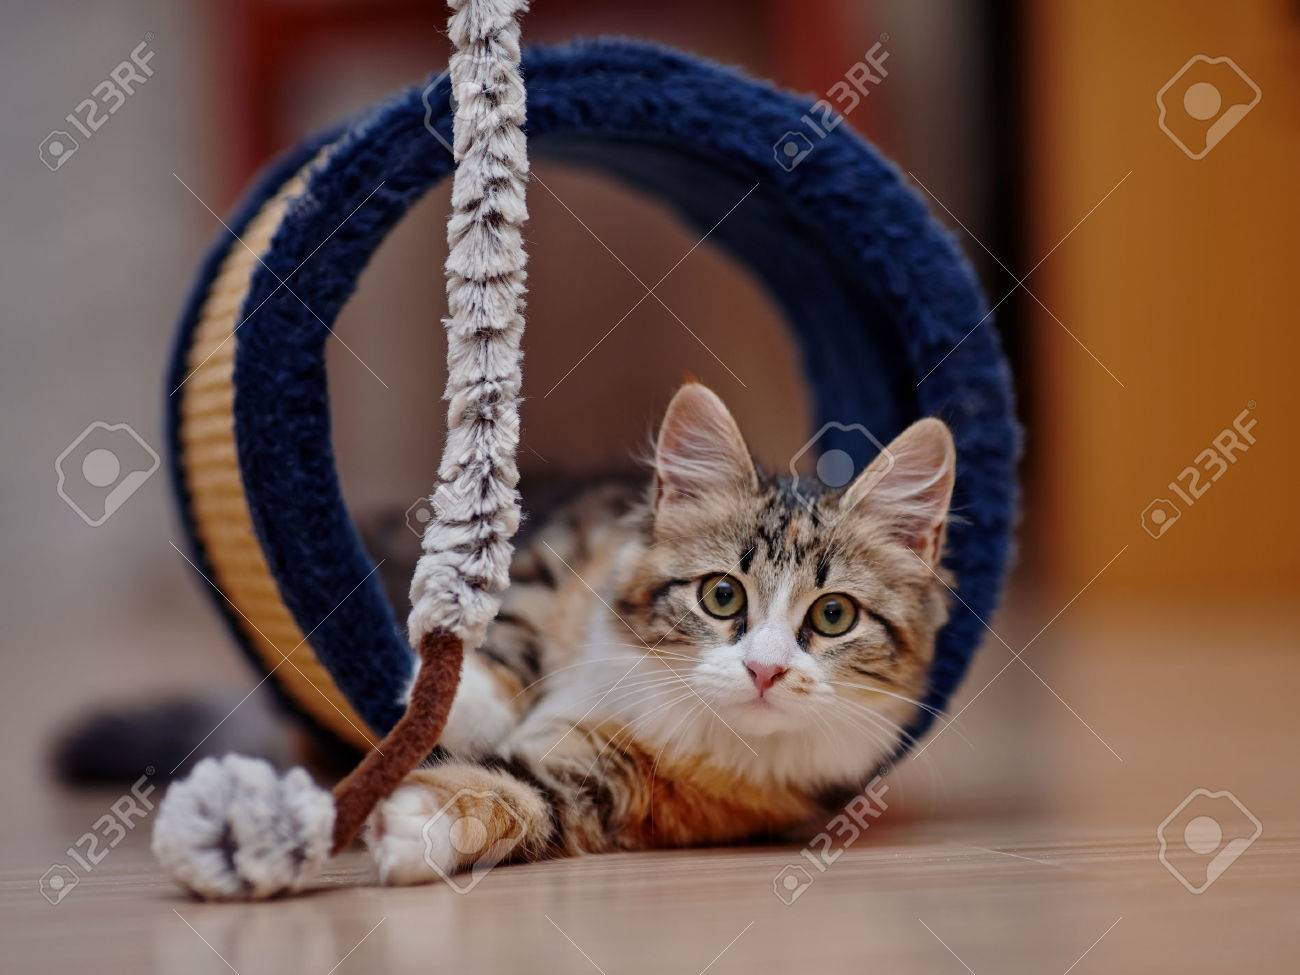 The domestic kitten of a multi-colored color plays on a floor. Standard-Bild - 47469484